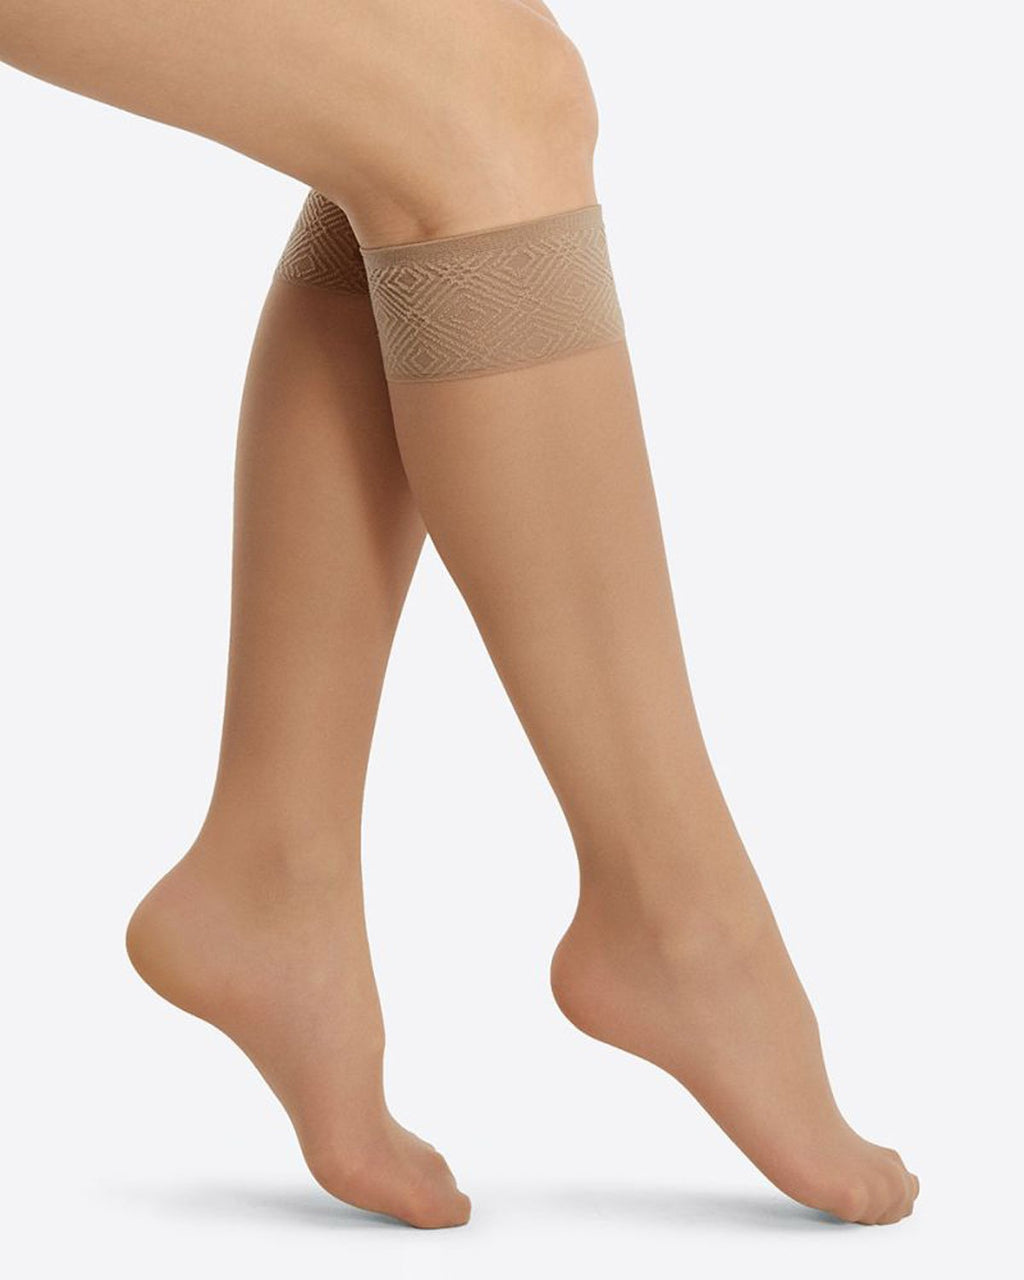 High Knee-Graduate Compression